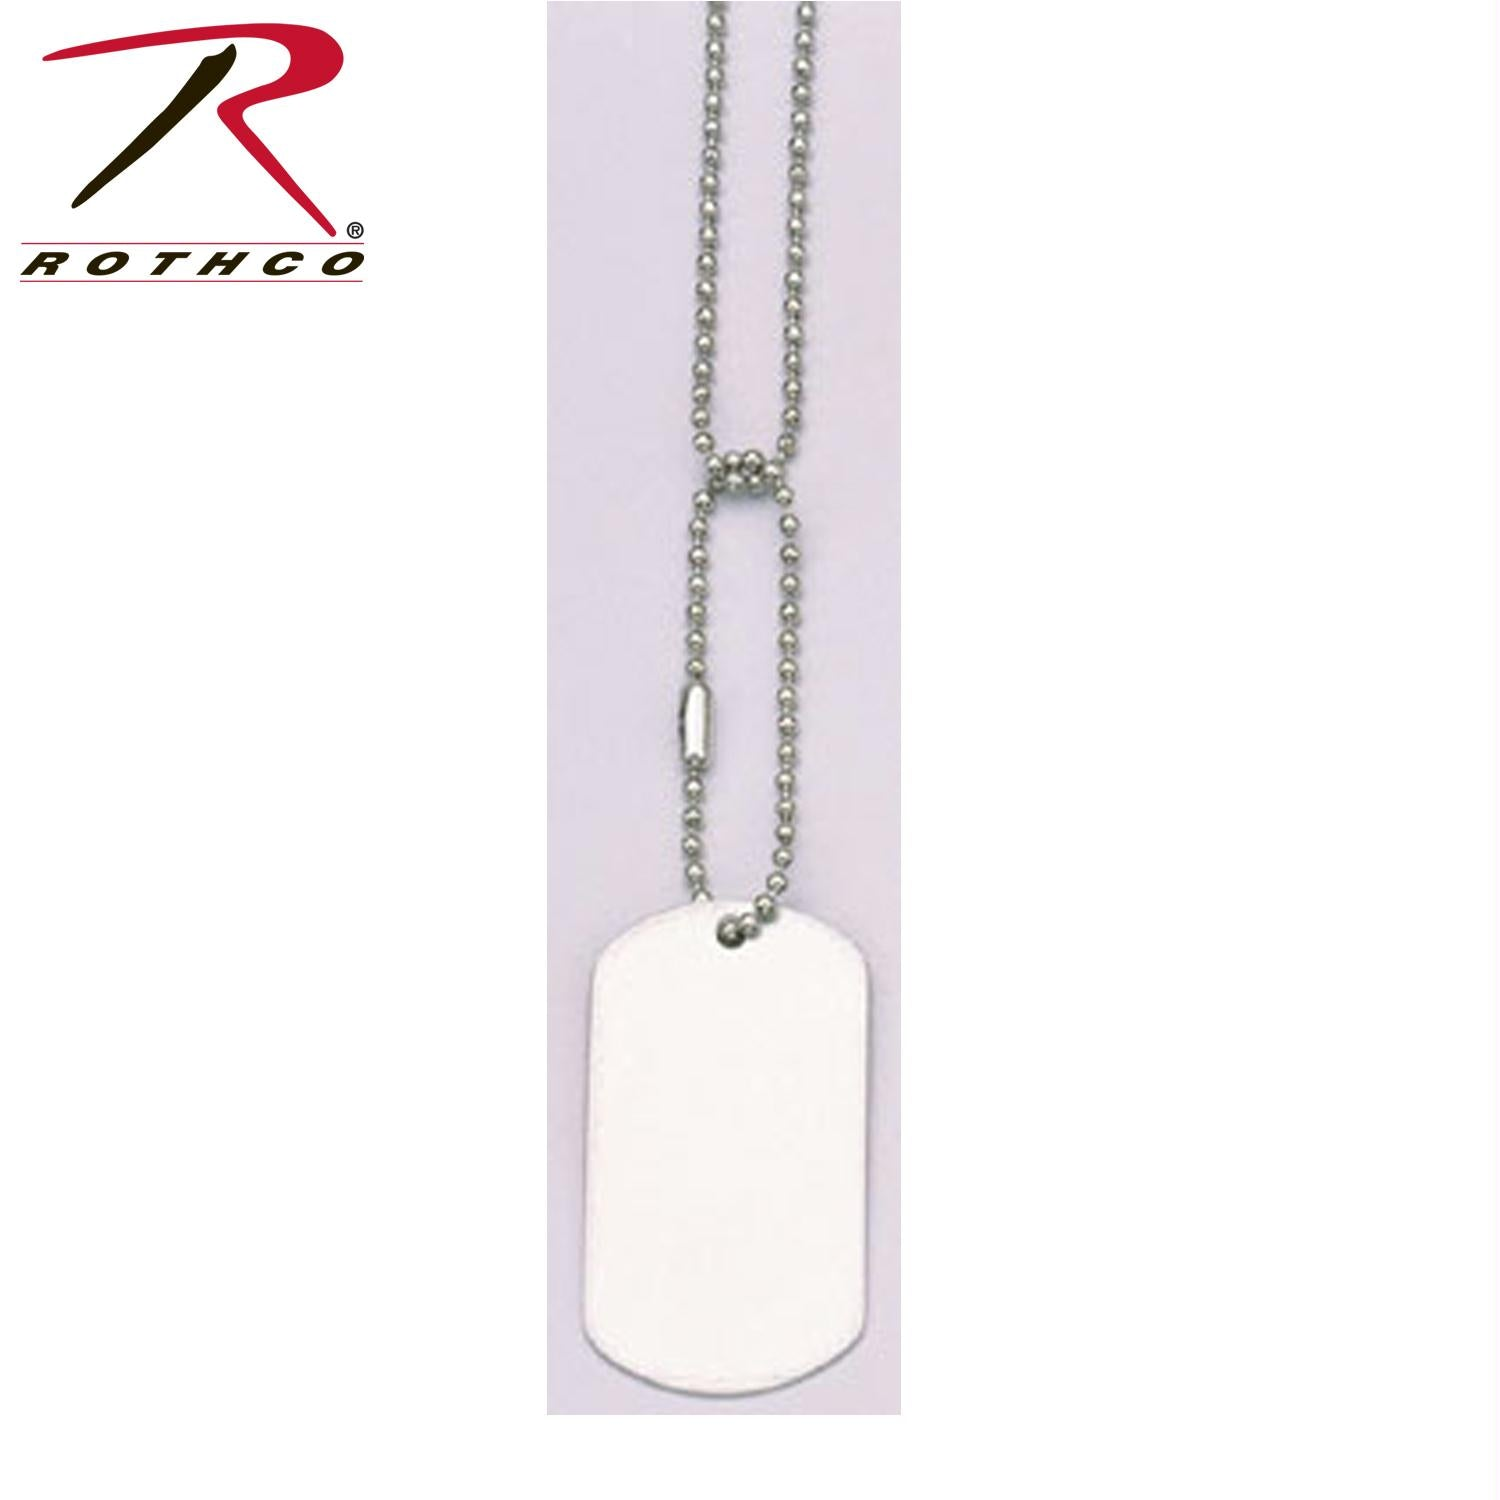 Rothco G.I. Type Dog Tag - Matte